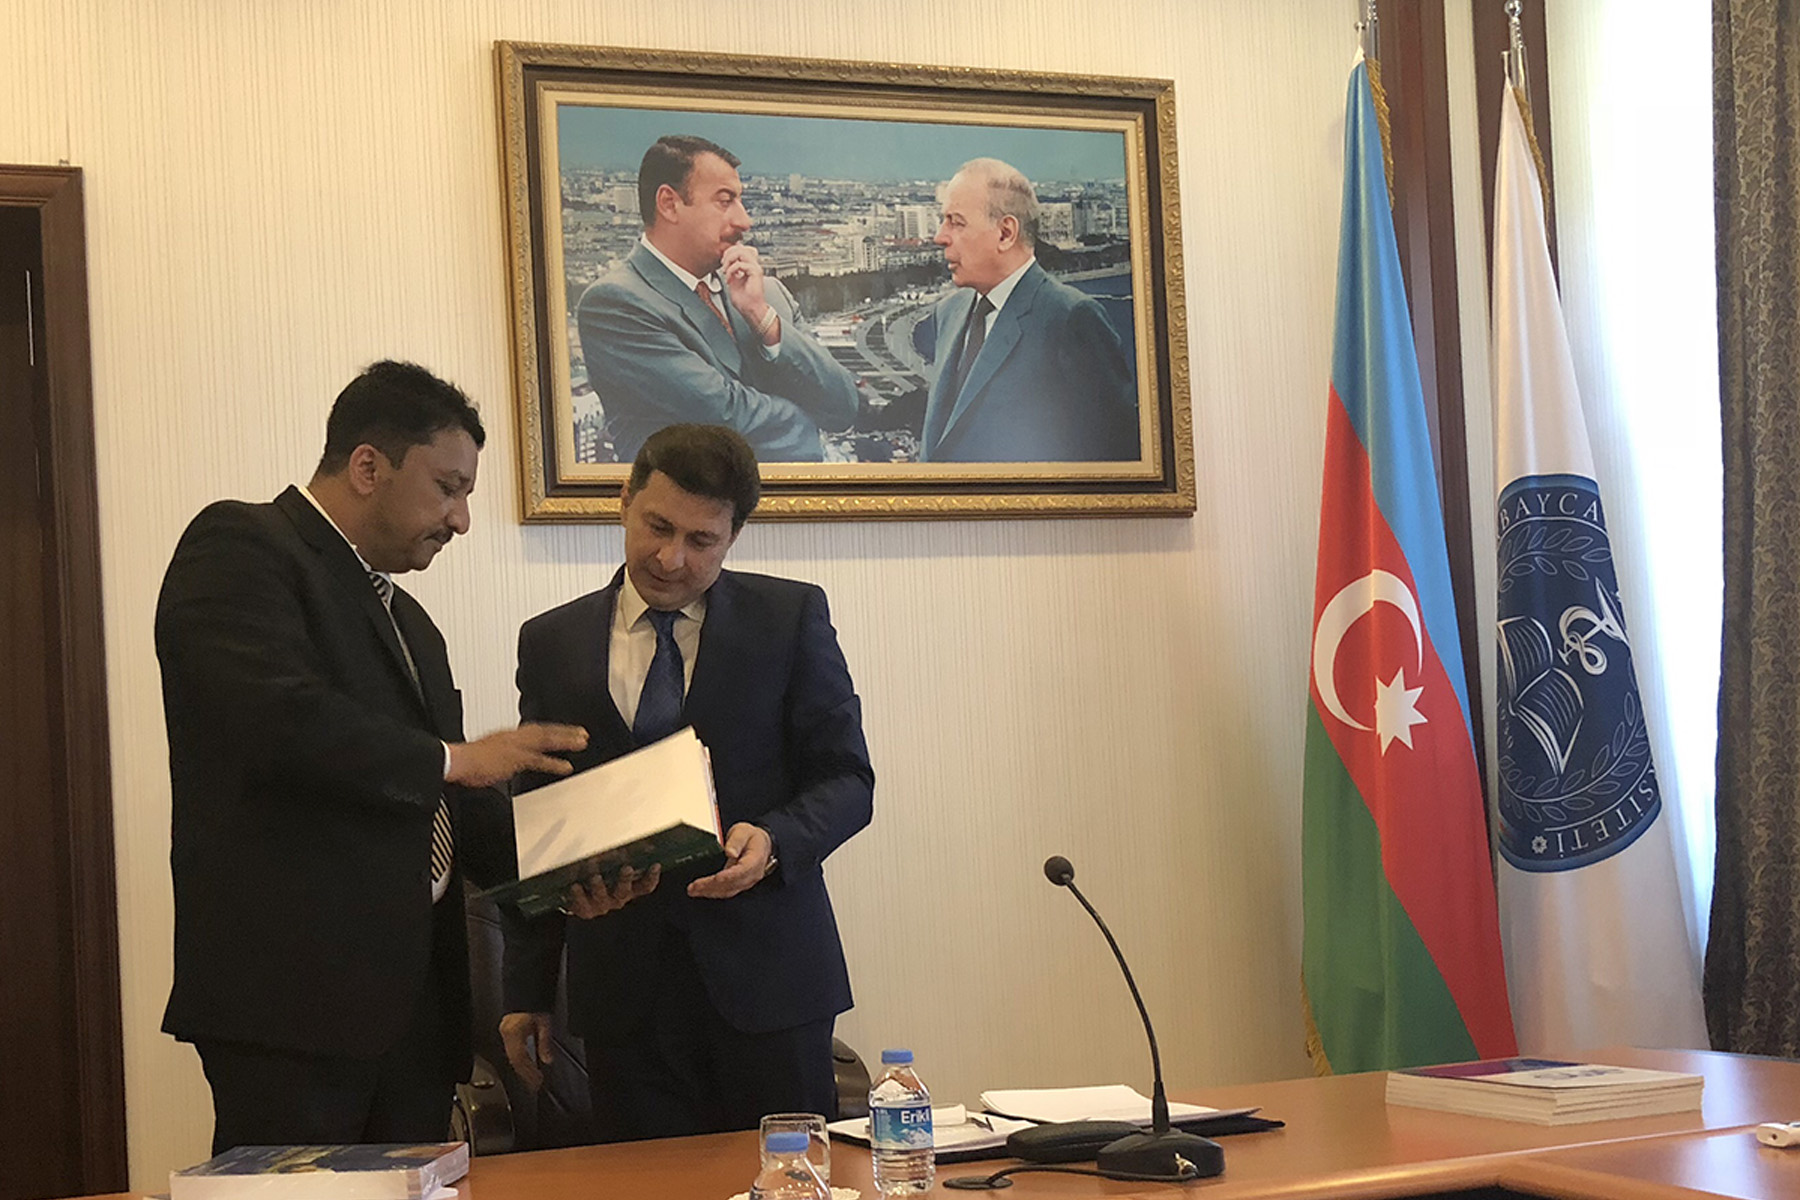 Dr SM Balaji elucidating the salient points of the textbook to the Rector, His Excellency Dr Garay Chingiz Garaybayli